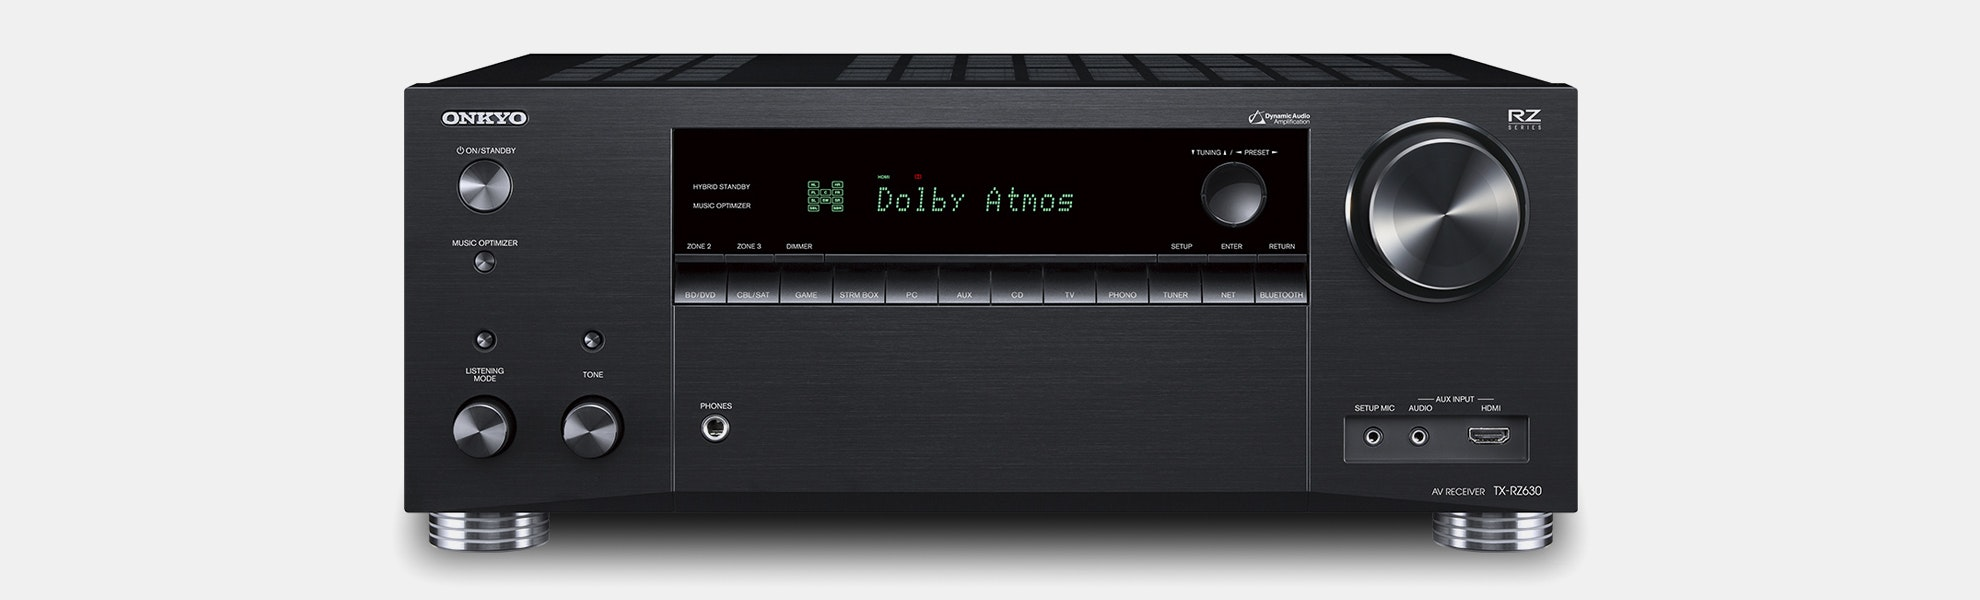 Onkyo RZ630/730/830 Dolby Atmos/DTS:X Receivers